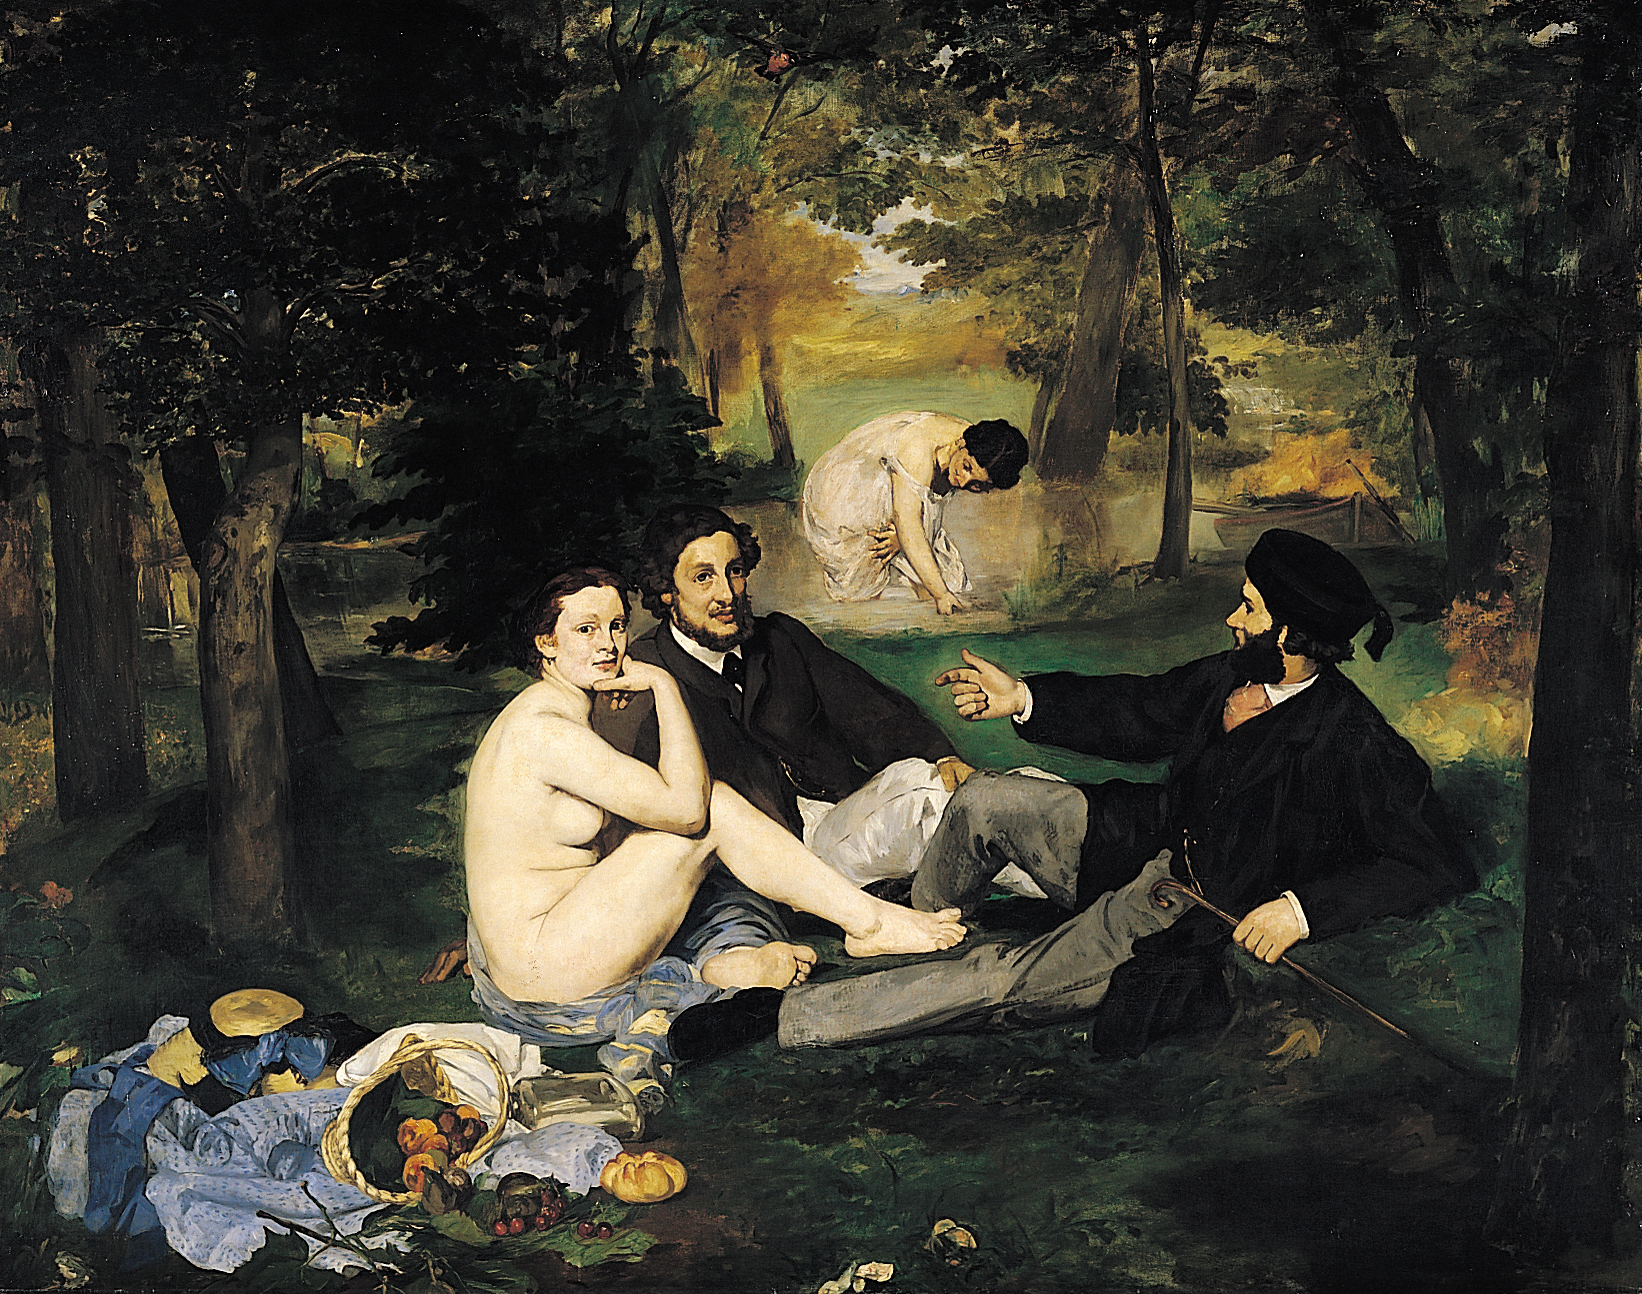 Edward Manet, Le Dejeuner Sur L'Herbe (Luncheon in the Grass), 1863